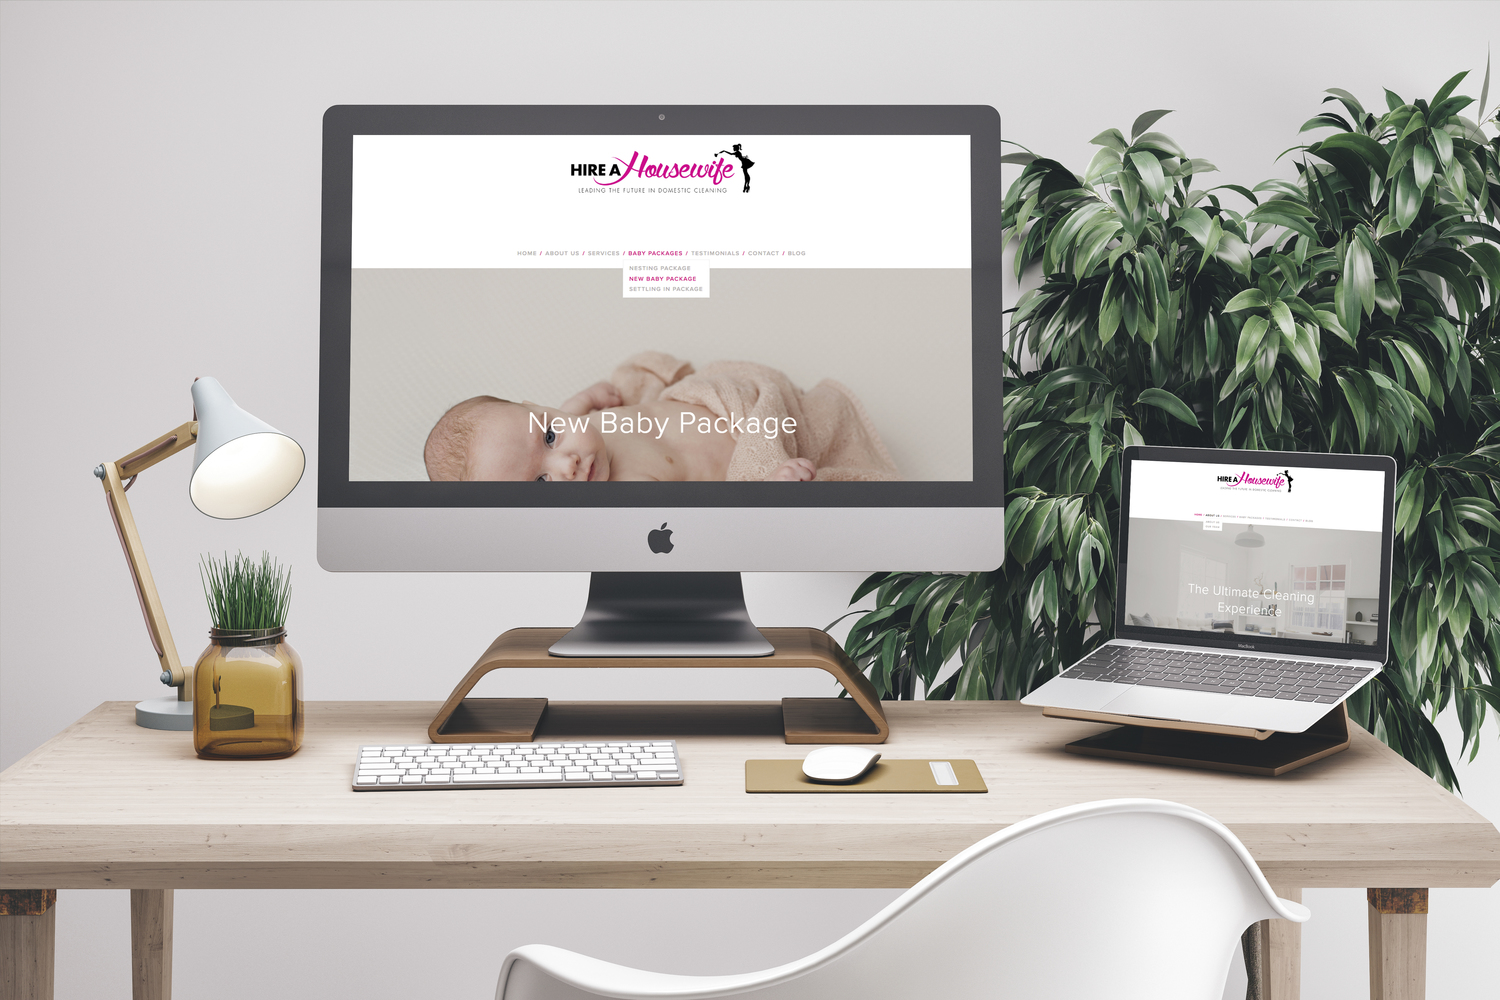 Website Design for Hire A Housewife